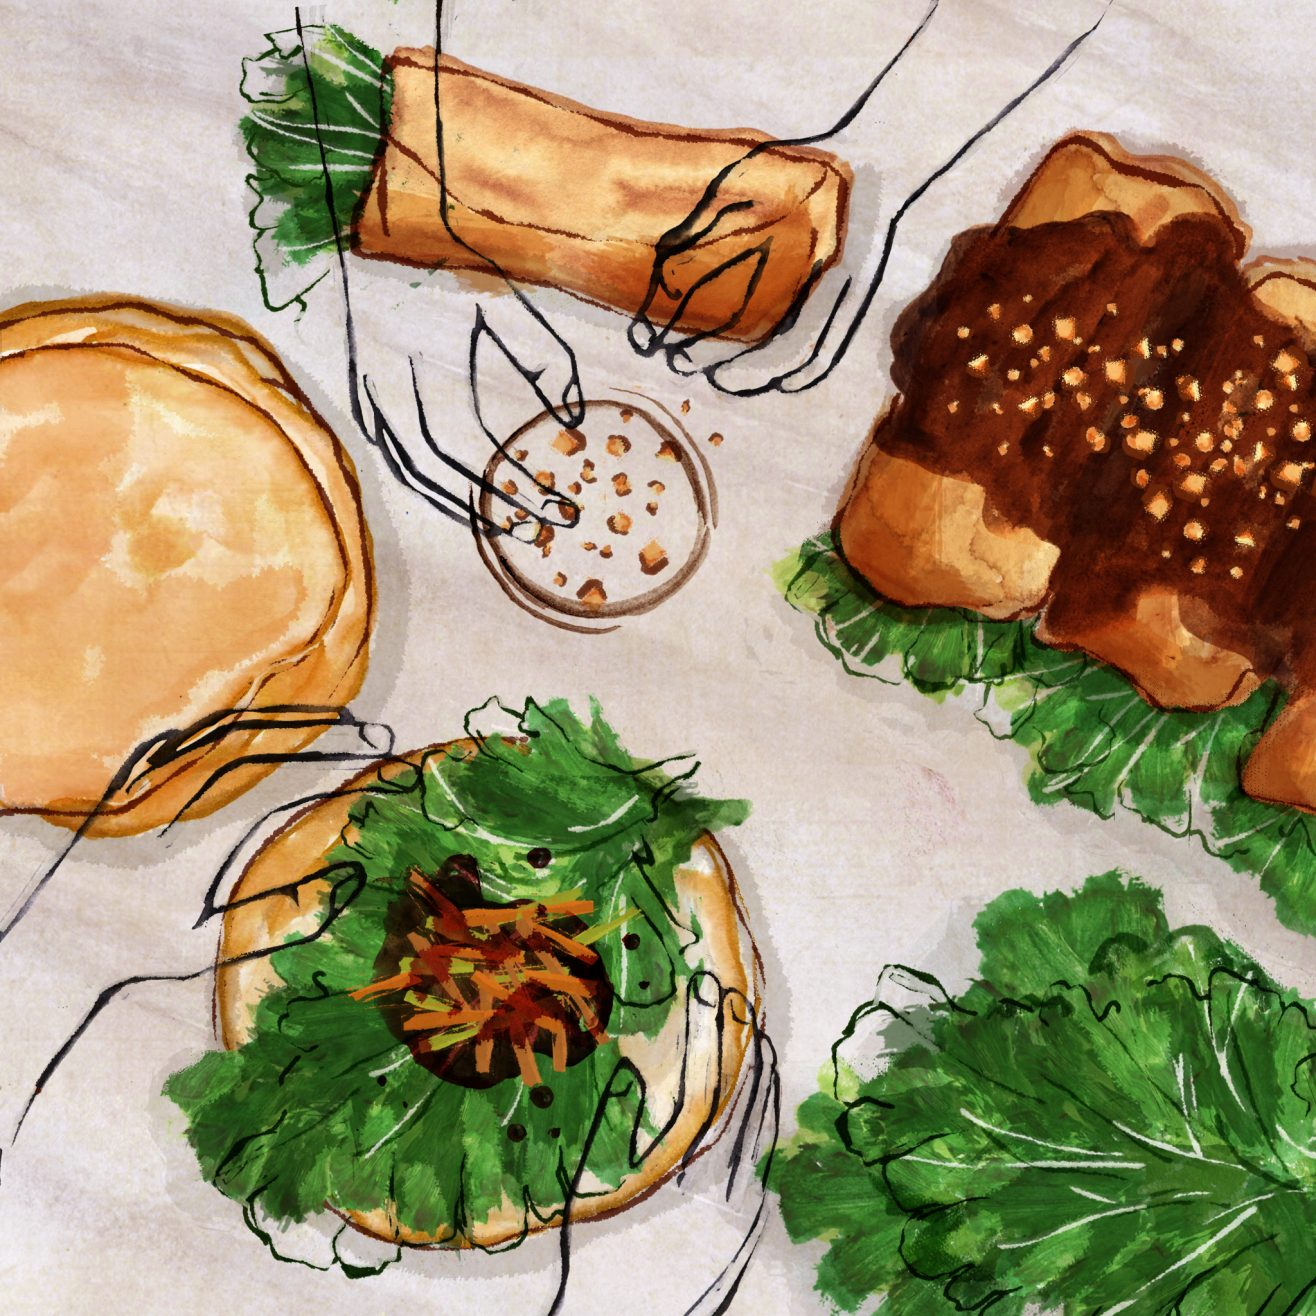 Illustration of vegetable dish with hands